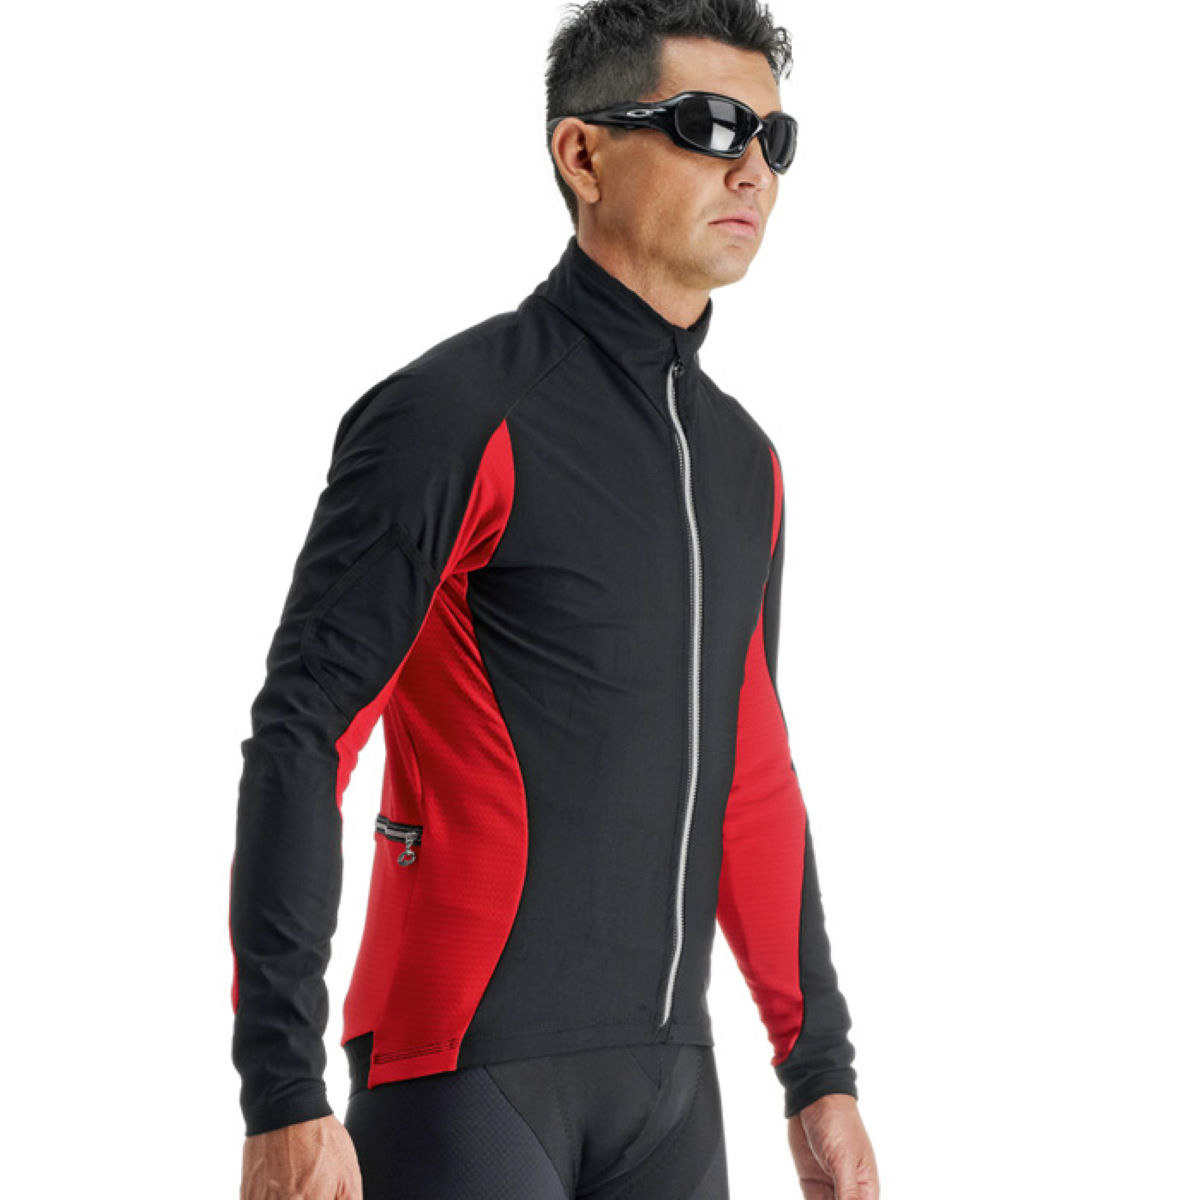 Veste coupe-vent Assos iJ.HaBu5 - L Red Swiss Coupe-vents vélo